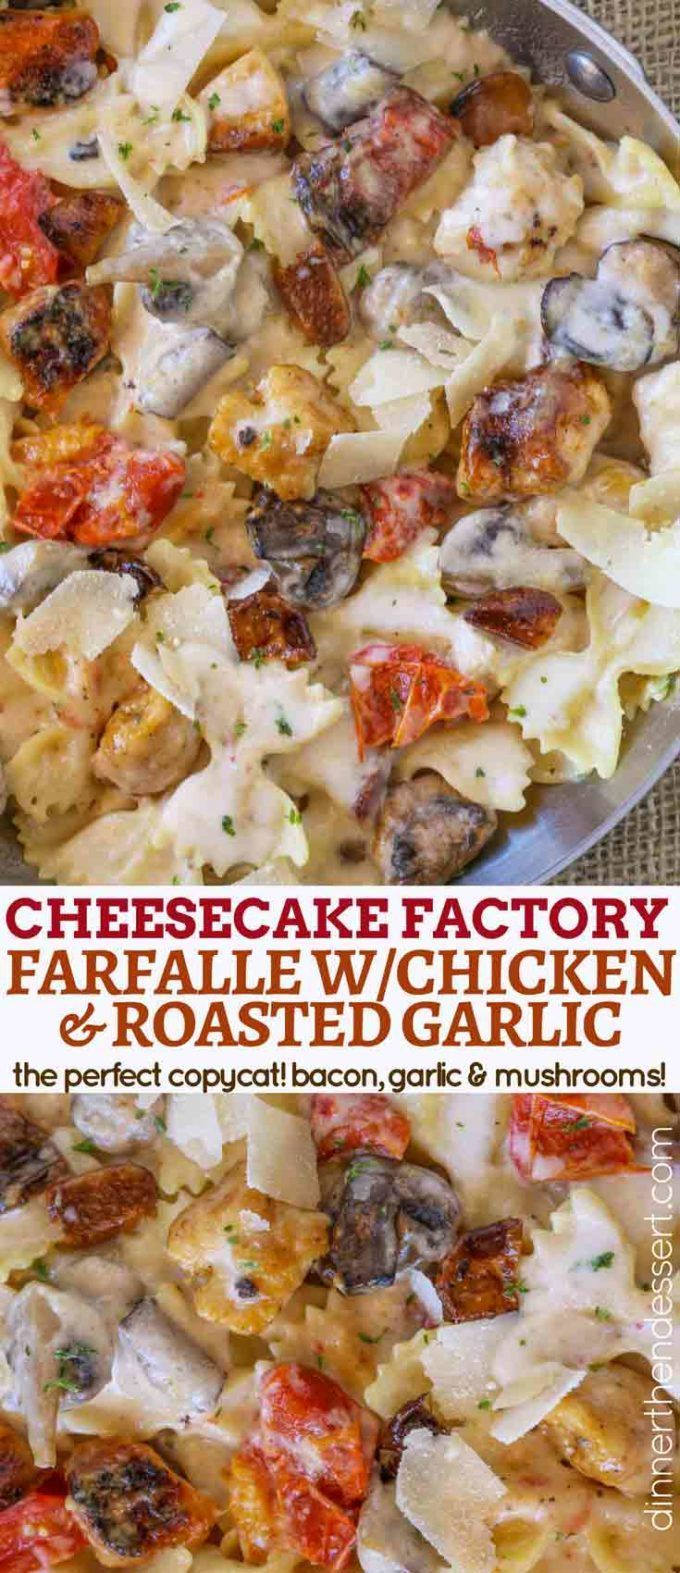 The Cheesecake Factory Farfalle with Chicken and Roasted Garlic #cheesecakefactoryrecipes